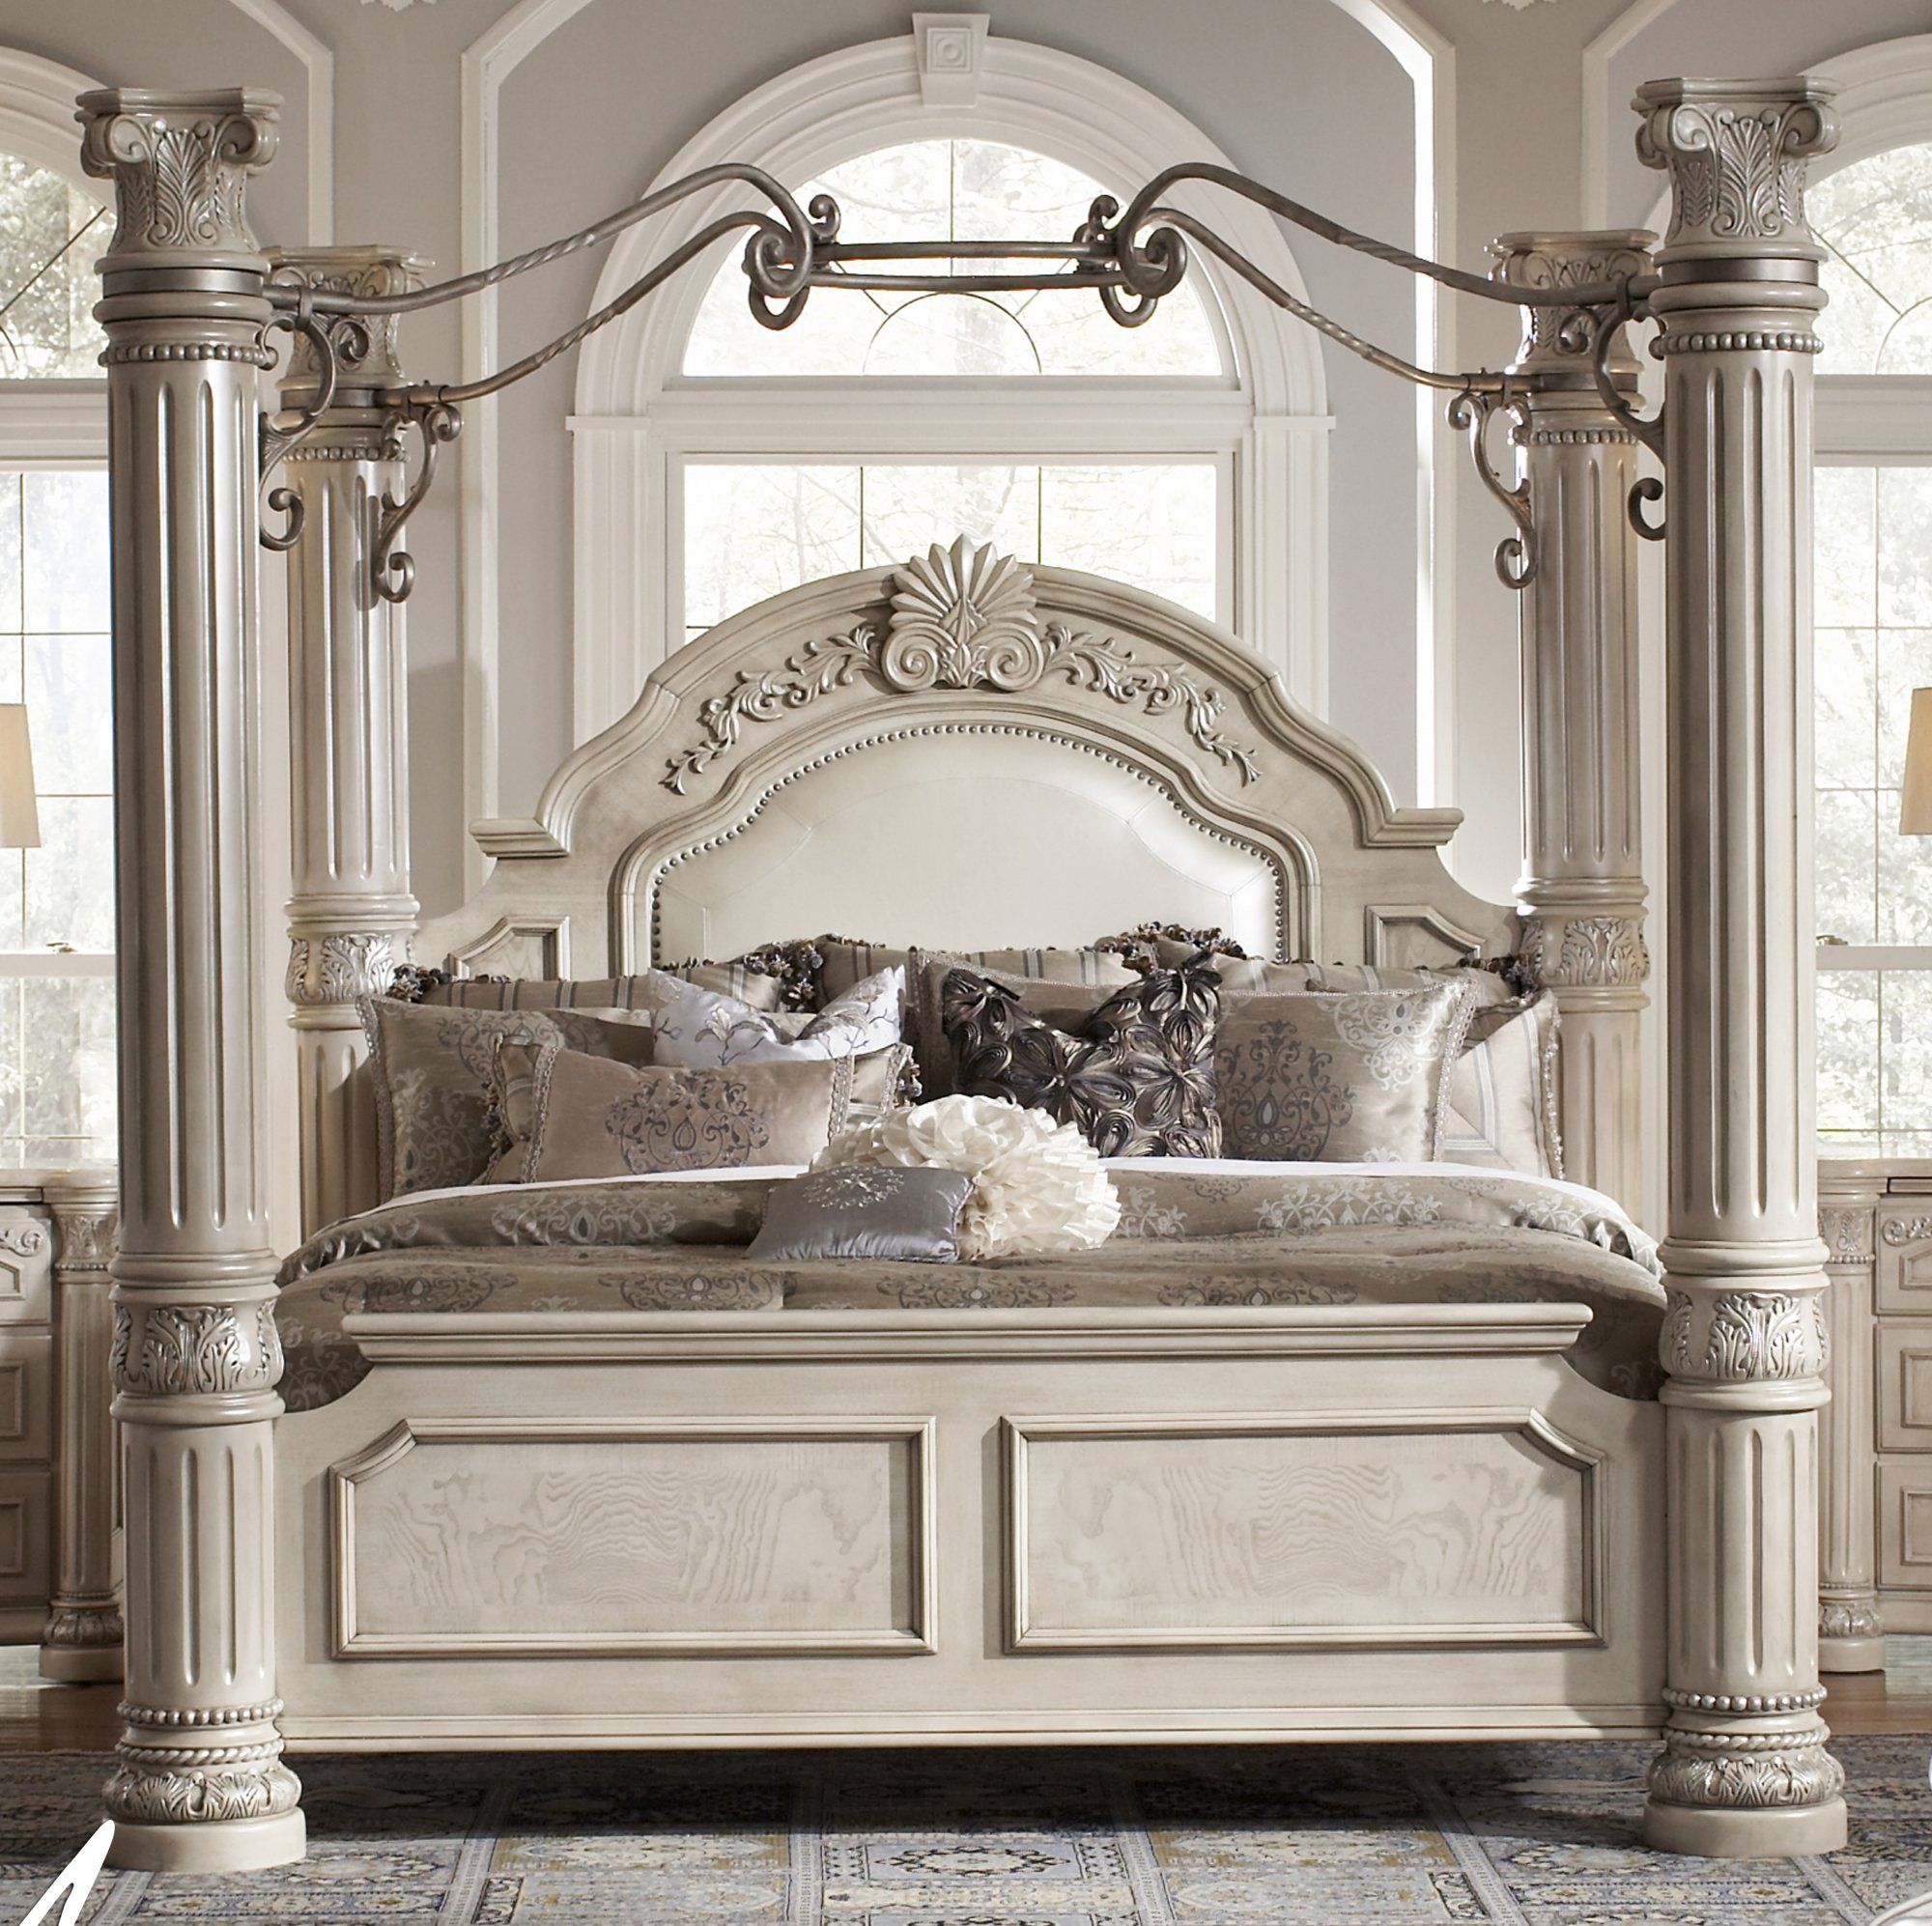 Aico Monte Carlo II - Silver Pearl Queen Canopy Bed only 1 Left ...